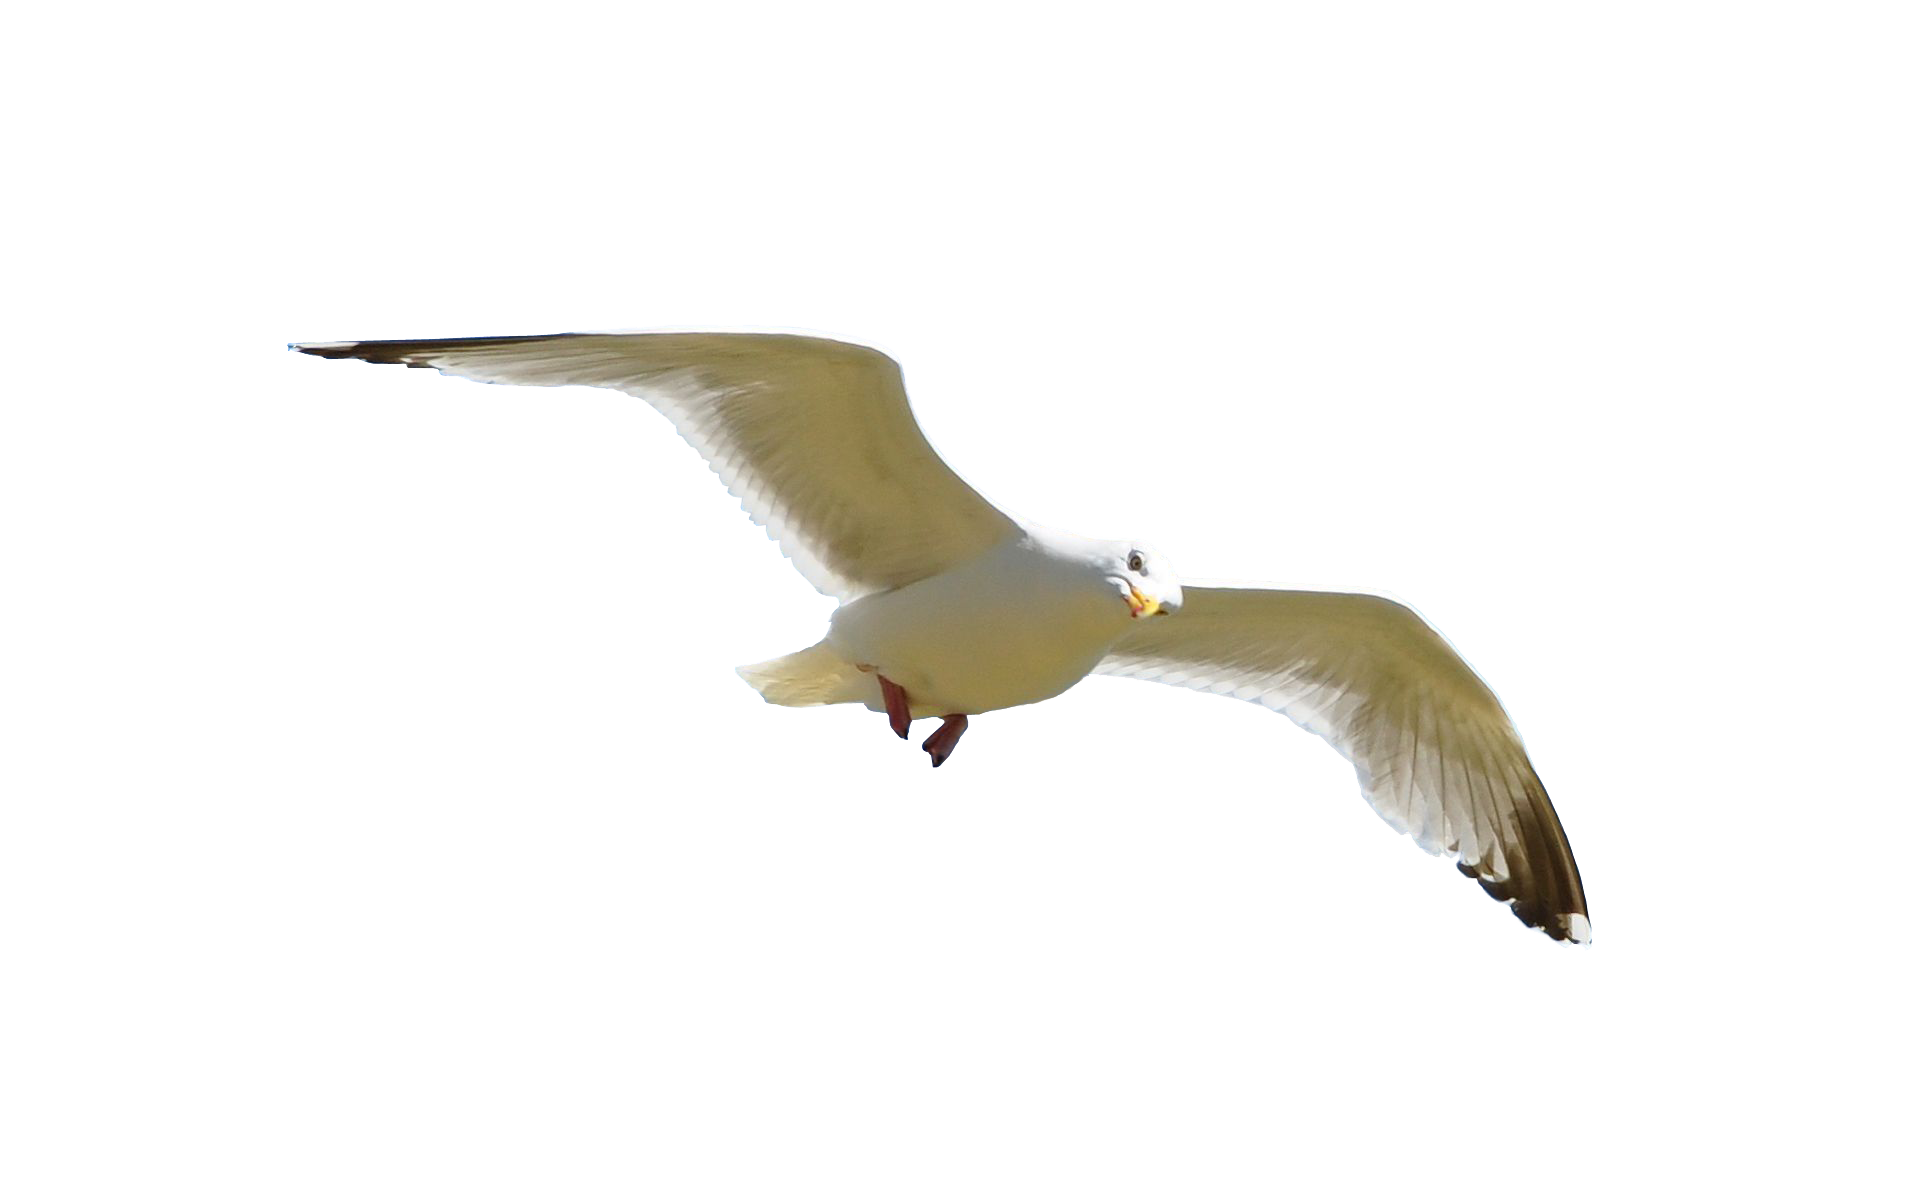 Fly flying png. Birds images free download